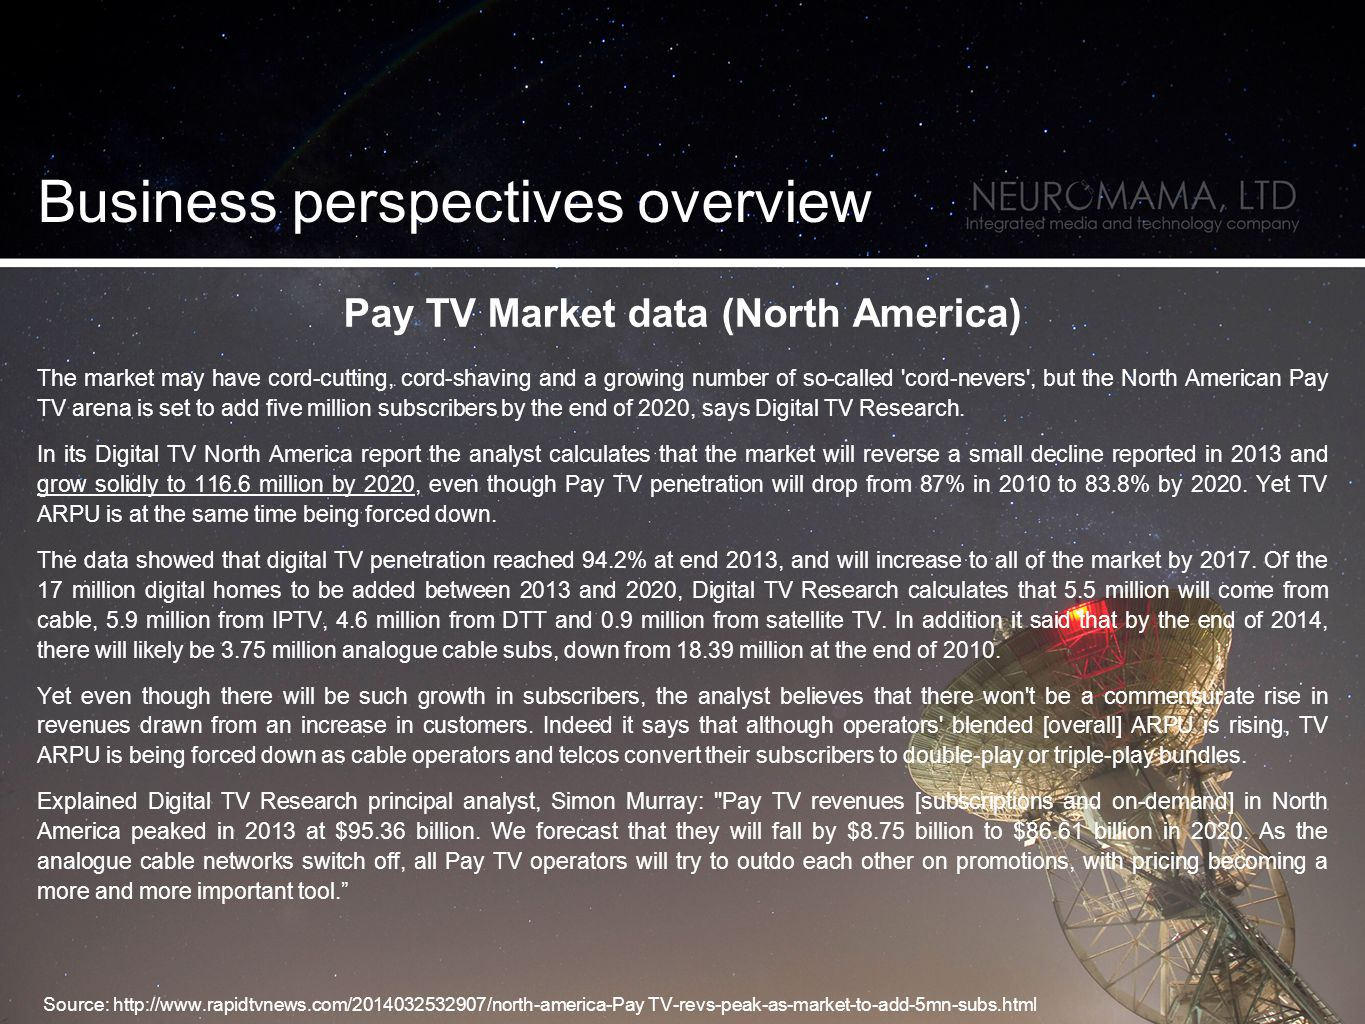 Pay TV Market data (North America) The market may have cord-cutting, cord-shaving and a growing number of so-called cord-nevers , but the North American Pay TV arena is set to add five million subscribers by the end of 2020, says Digital TV Research.